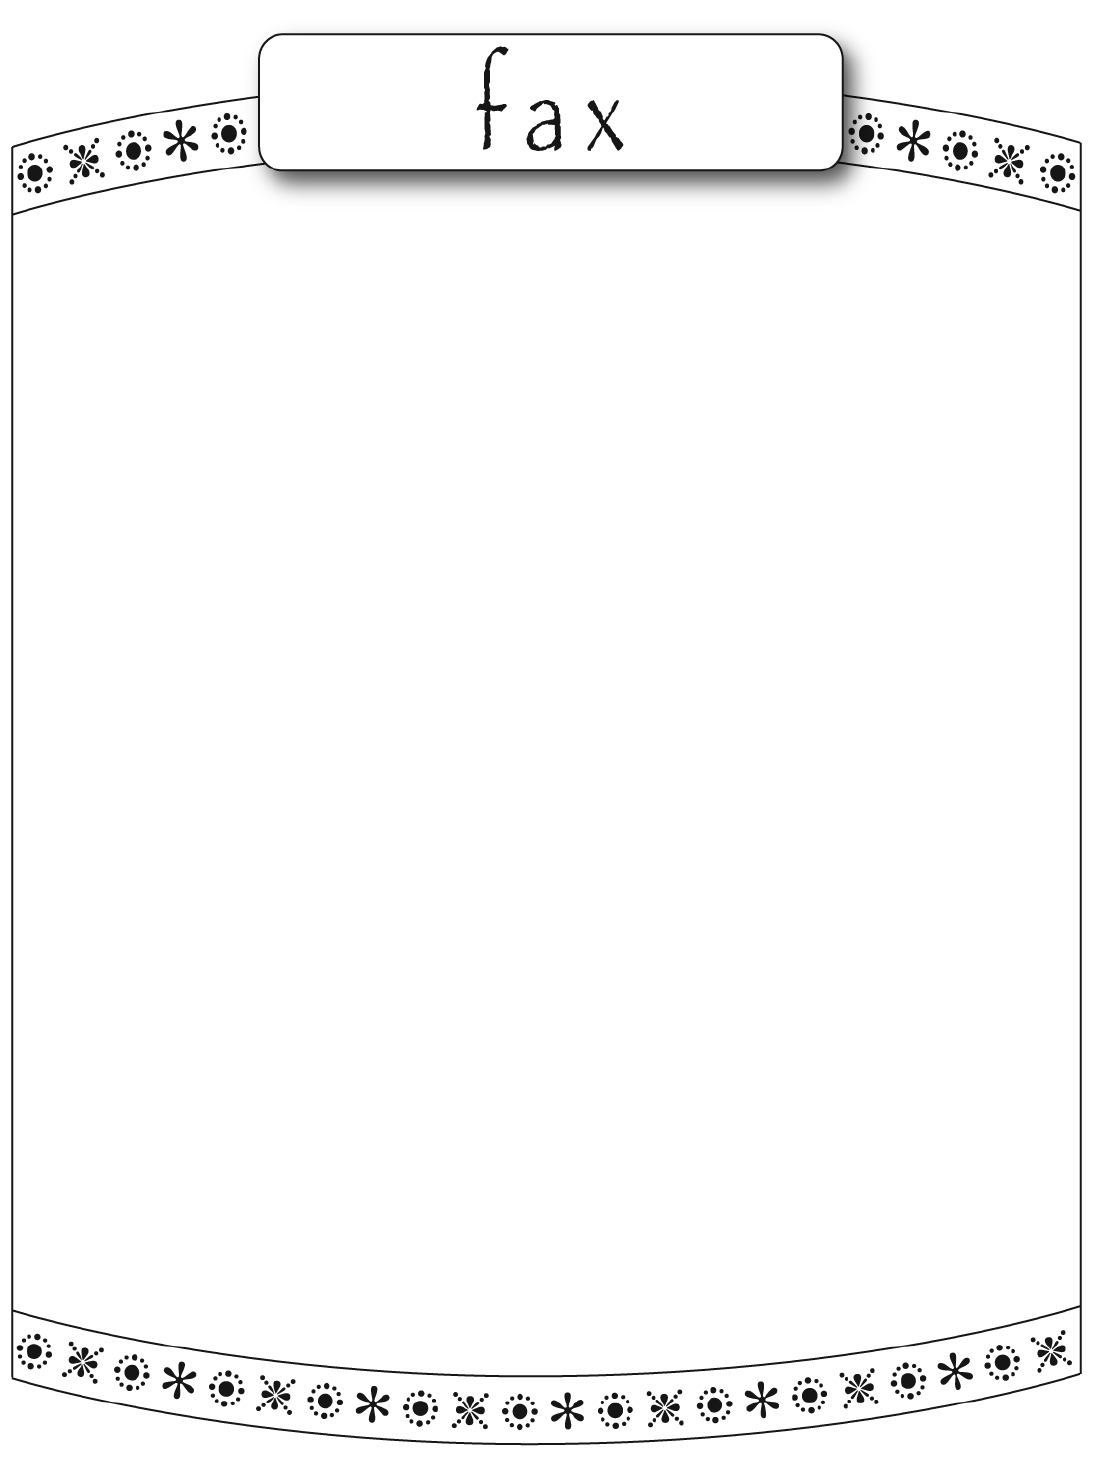 the cute fax cover sheet can help you make a professional and cute fax cover sheet 3